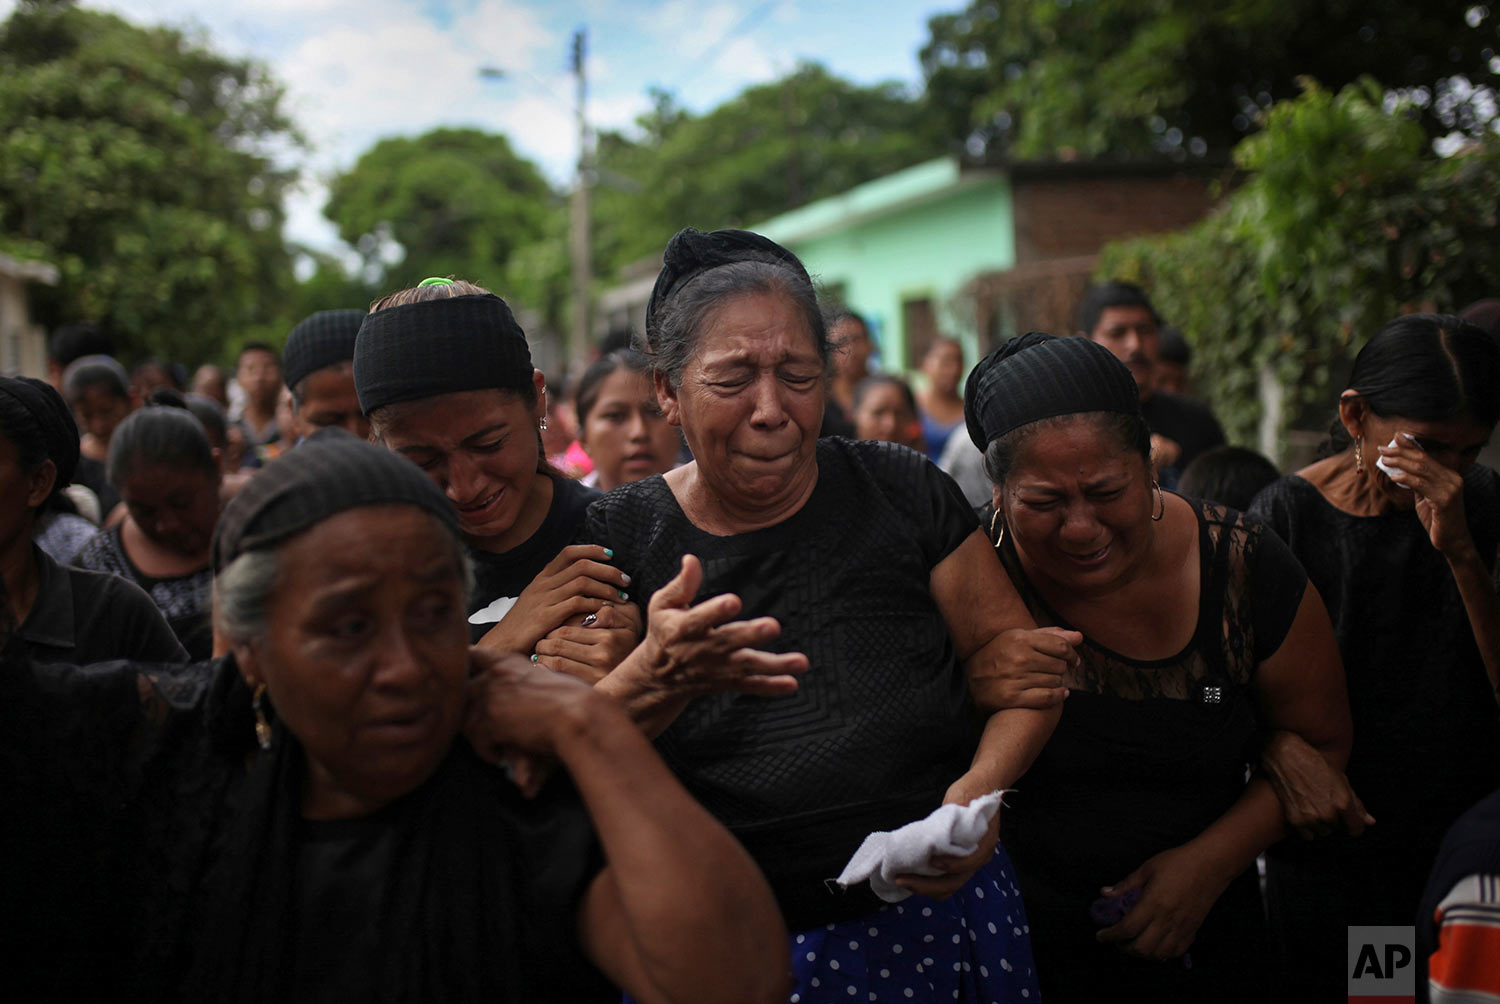 Relatives of 38-year-old earthquake victim, police officer Juan Jimenez Regalado, weep during his funeral in Juchitan, Oaxaca state, Mexico, Sunday, Sept. 10, 2017. An massive 8.1 earthquake struck the center of the Zapotec culture, killing at least 96 people in Chiapas and neighboring Oaxaca. (AP Photo/Felix Marquez)